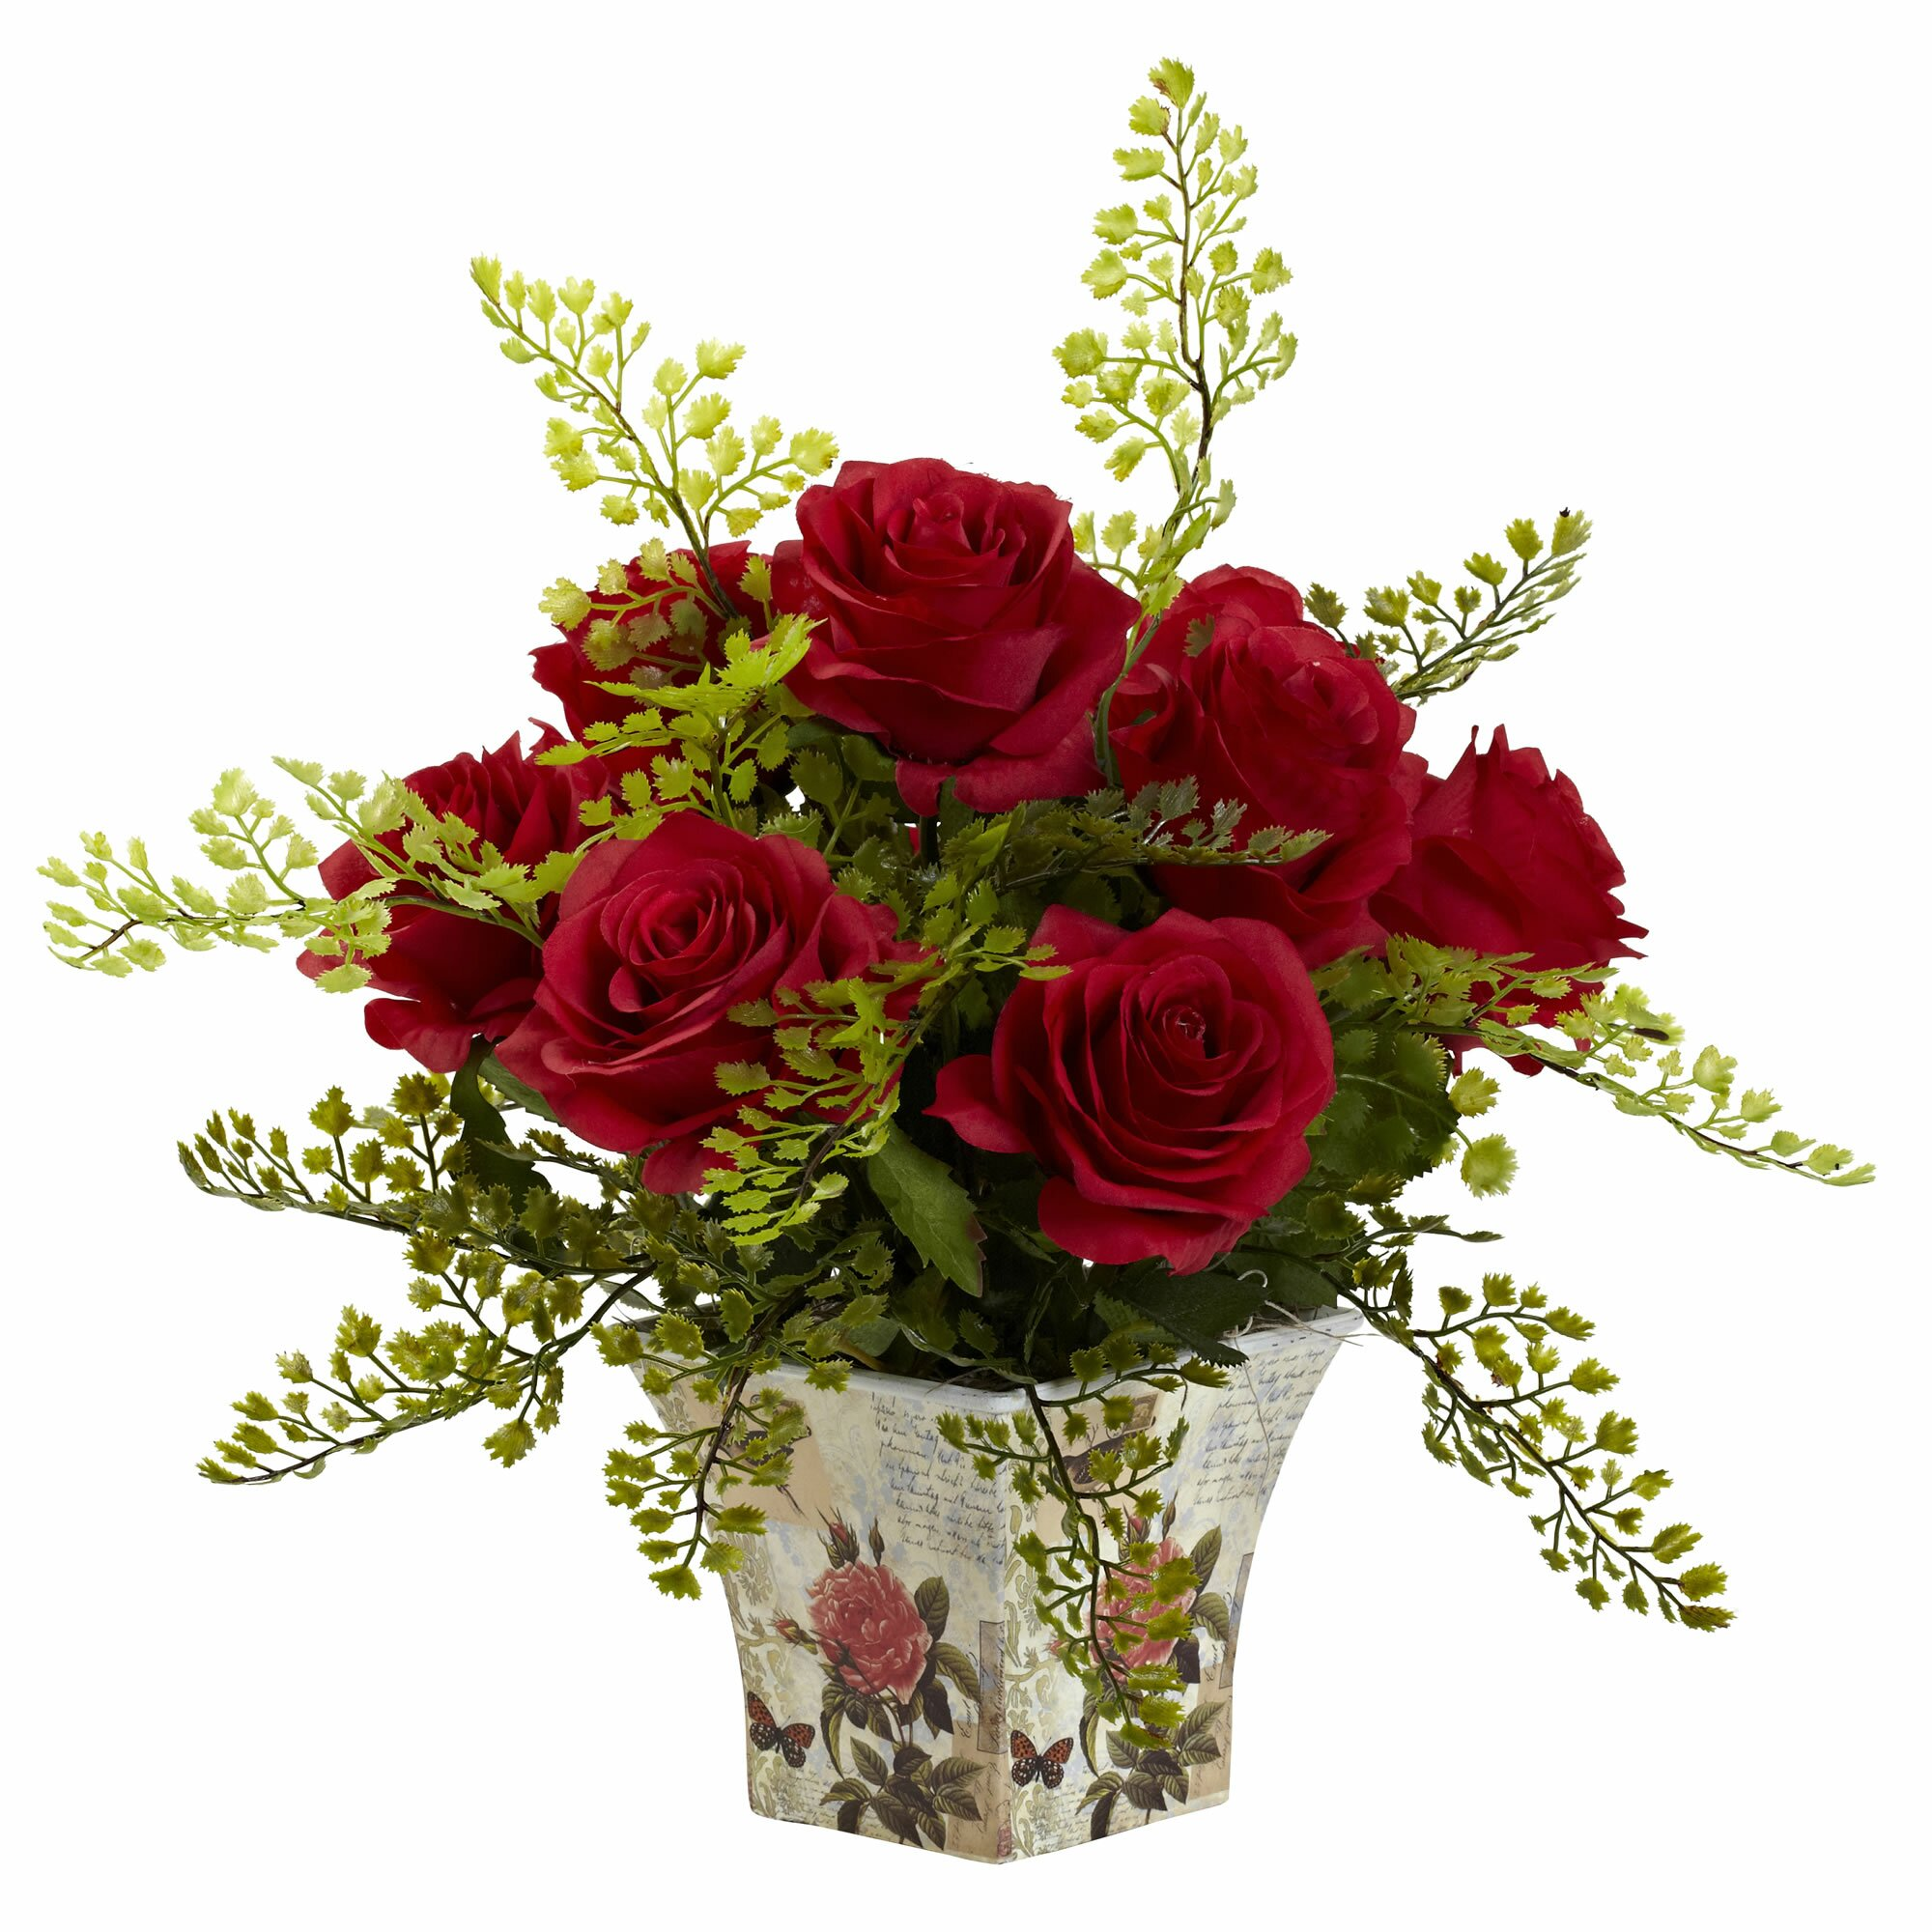 11 Real Roses And 1 Fake Nearly Natural Rose And Maiden Hair With Floral